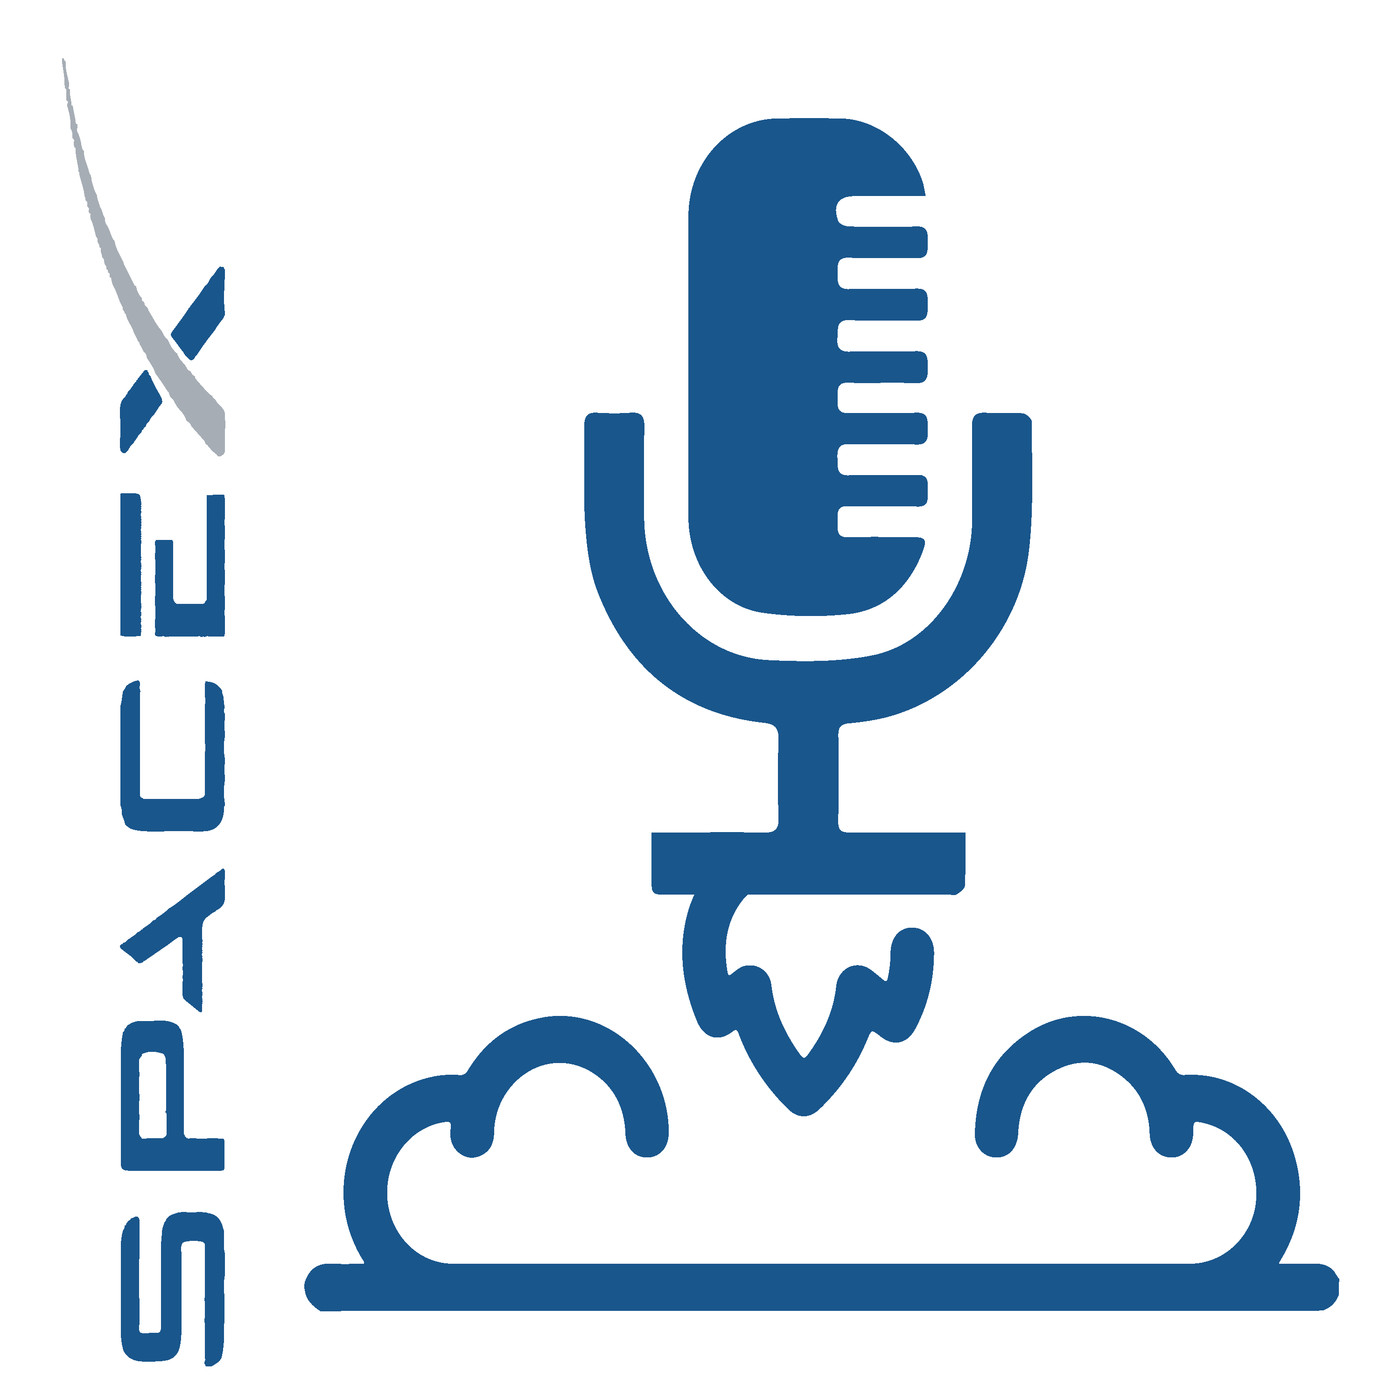 Ep.5 - SpaceX, Super Heavy